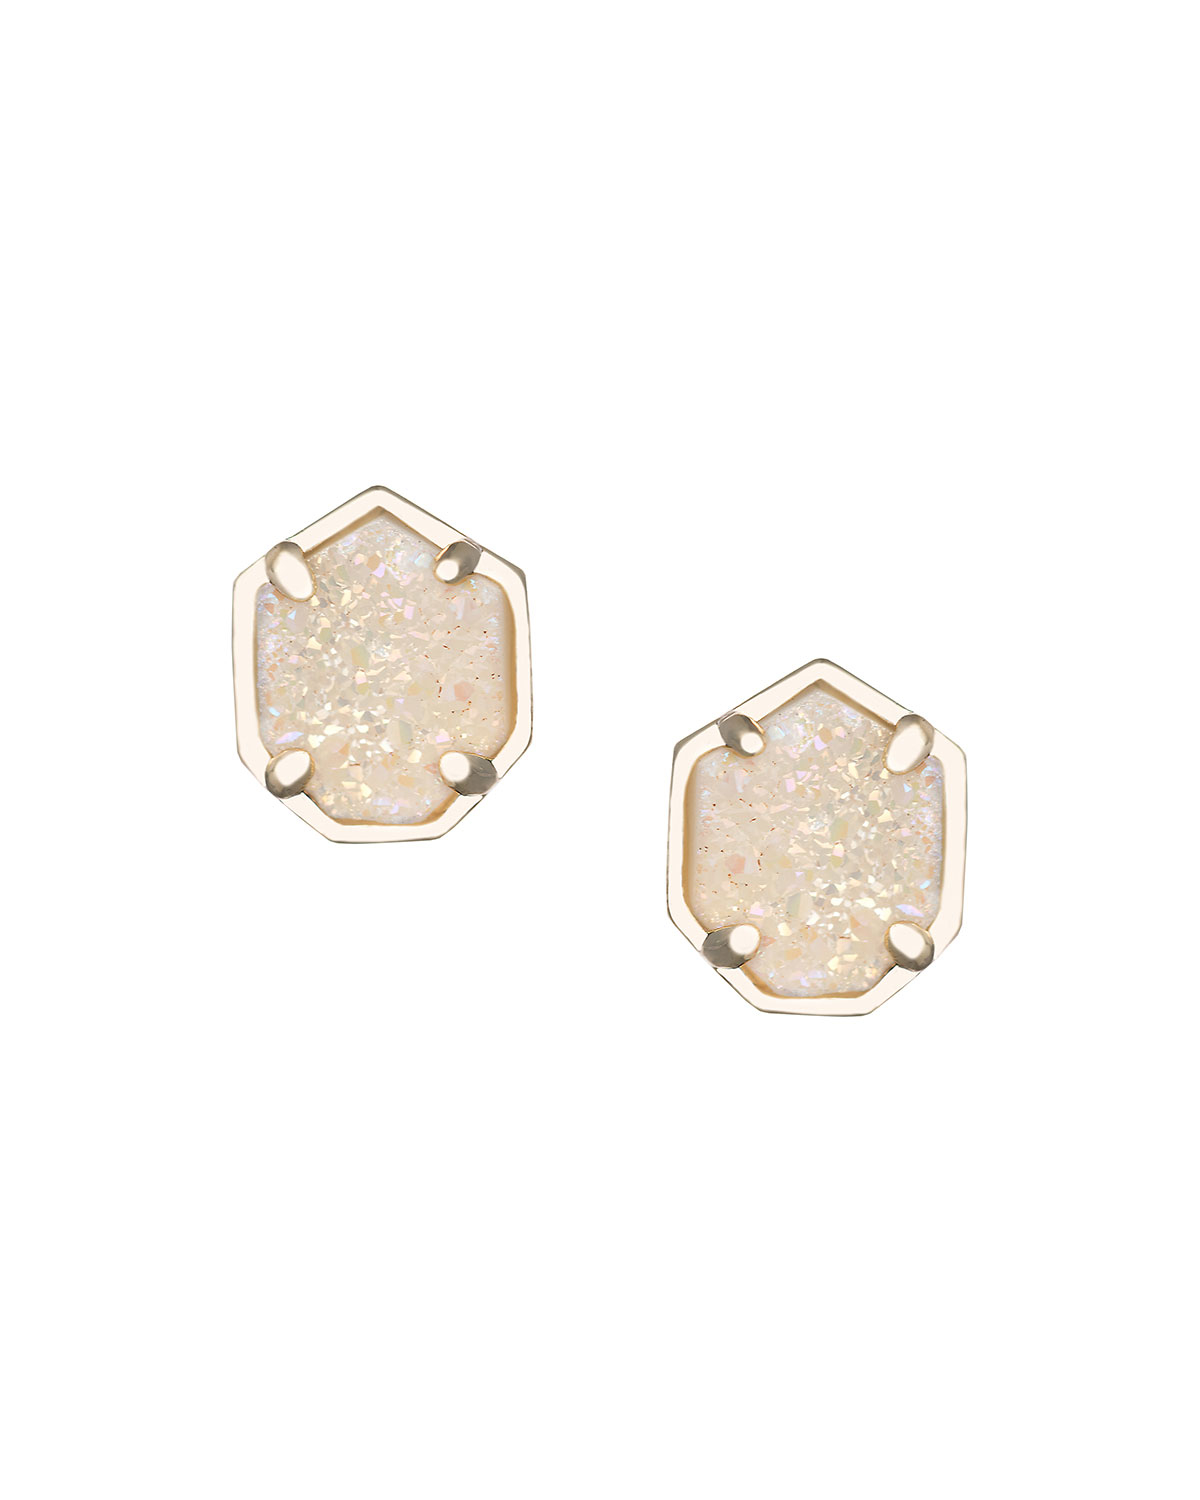 kendra earrings studs kendra logan drusy stud earrings in gold platinum 2877